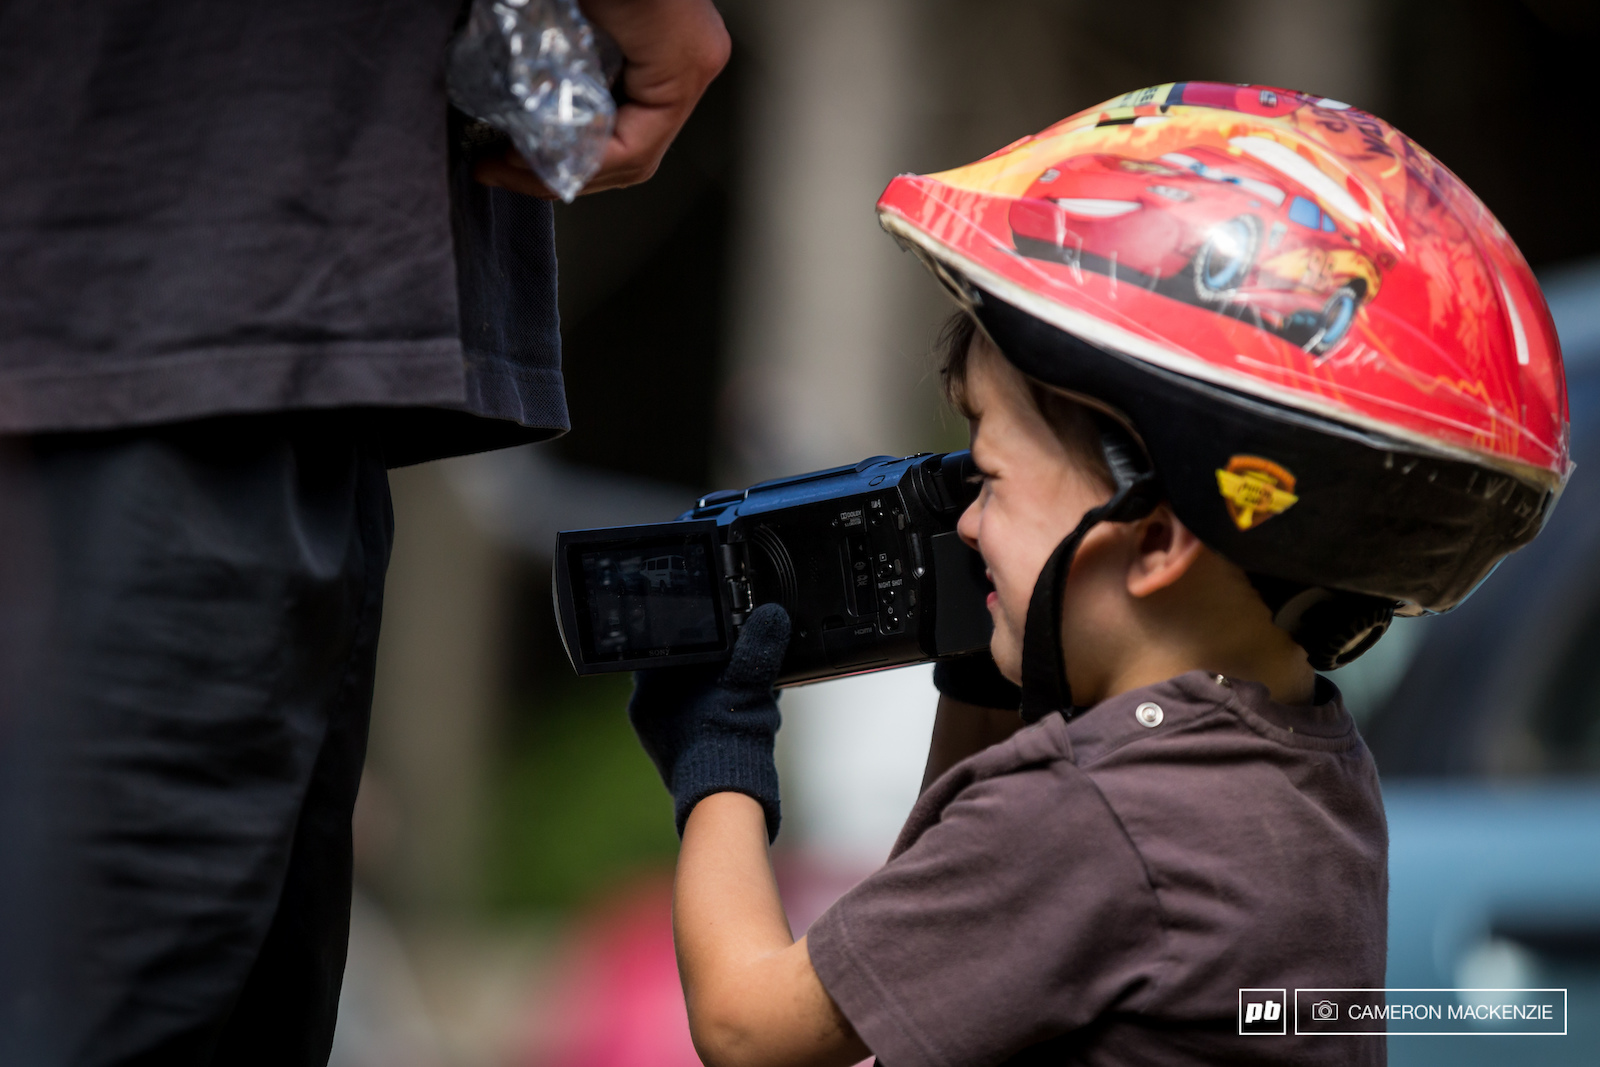 The next Joe Bowman. I d say it will still be a few years before his raw videos are up to standard though and he point the camera in the direction of the action.